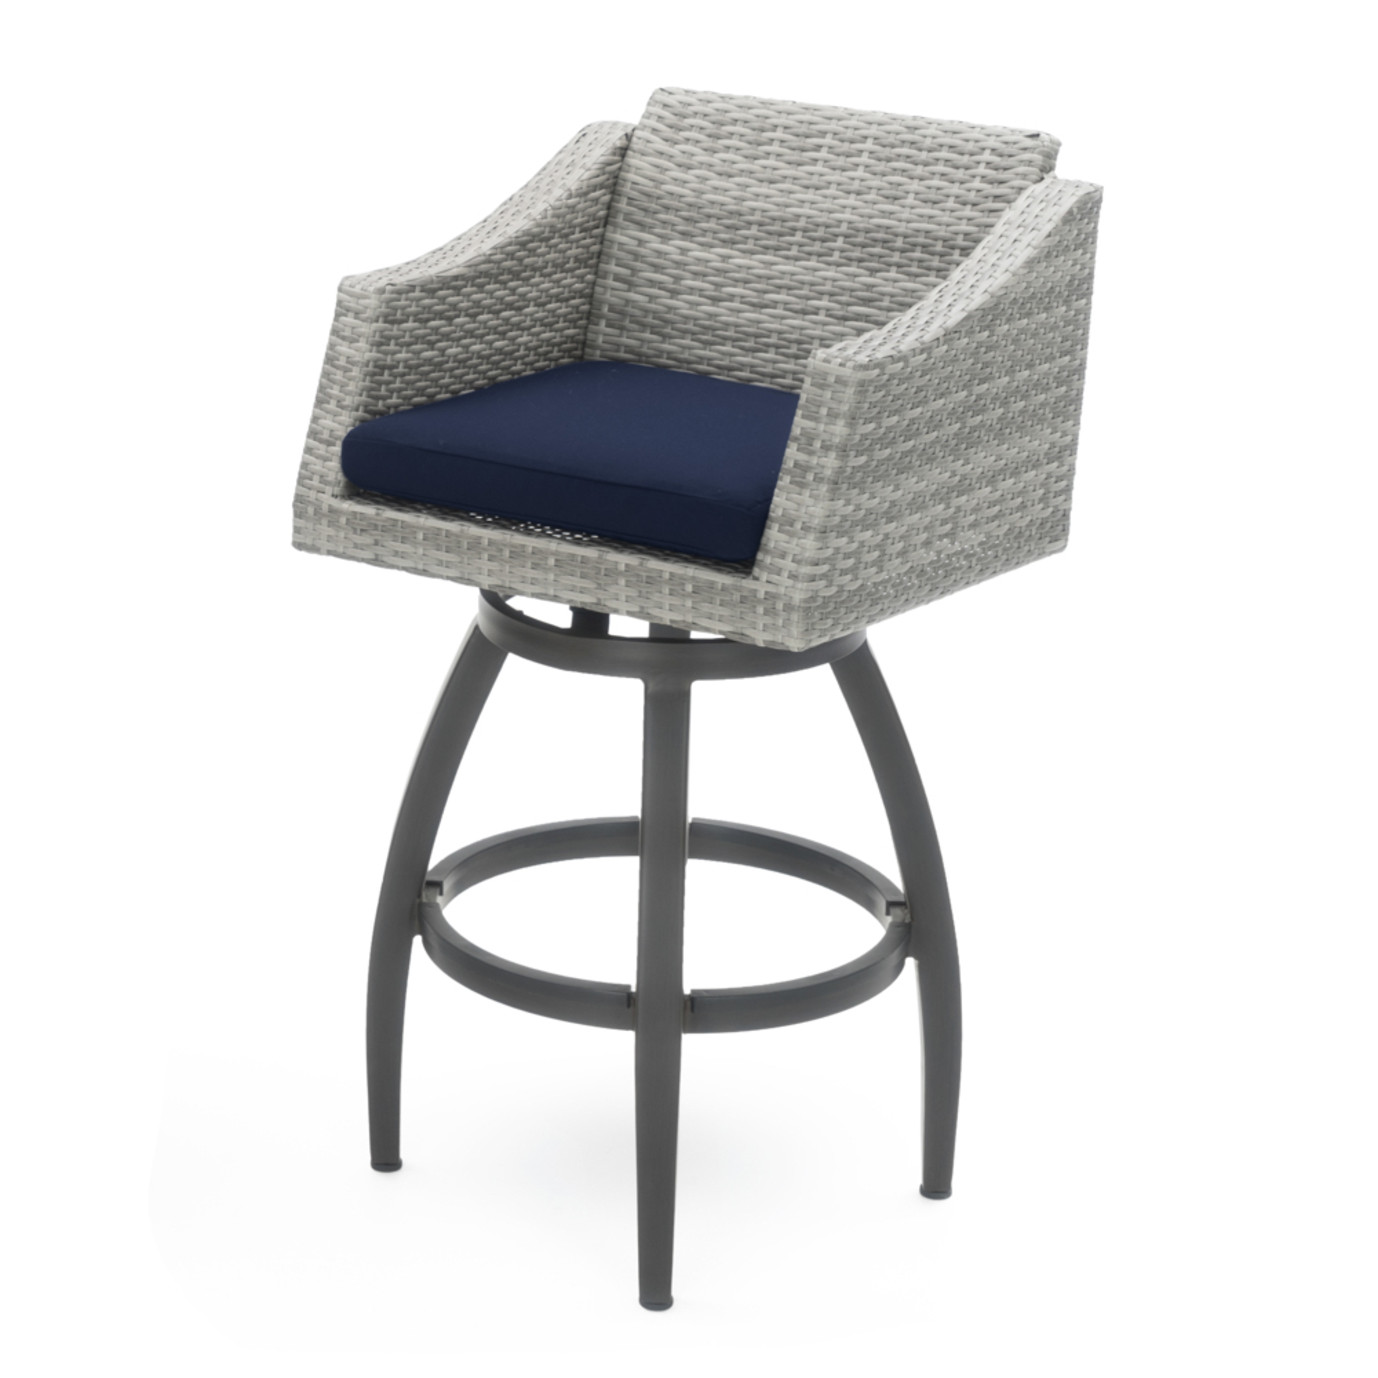 Cannes™ 5 Piece Barstool Set - Navy Blue